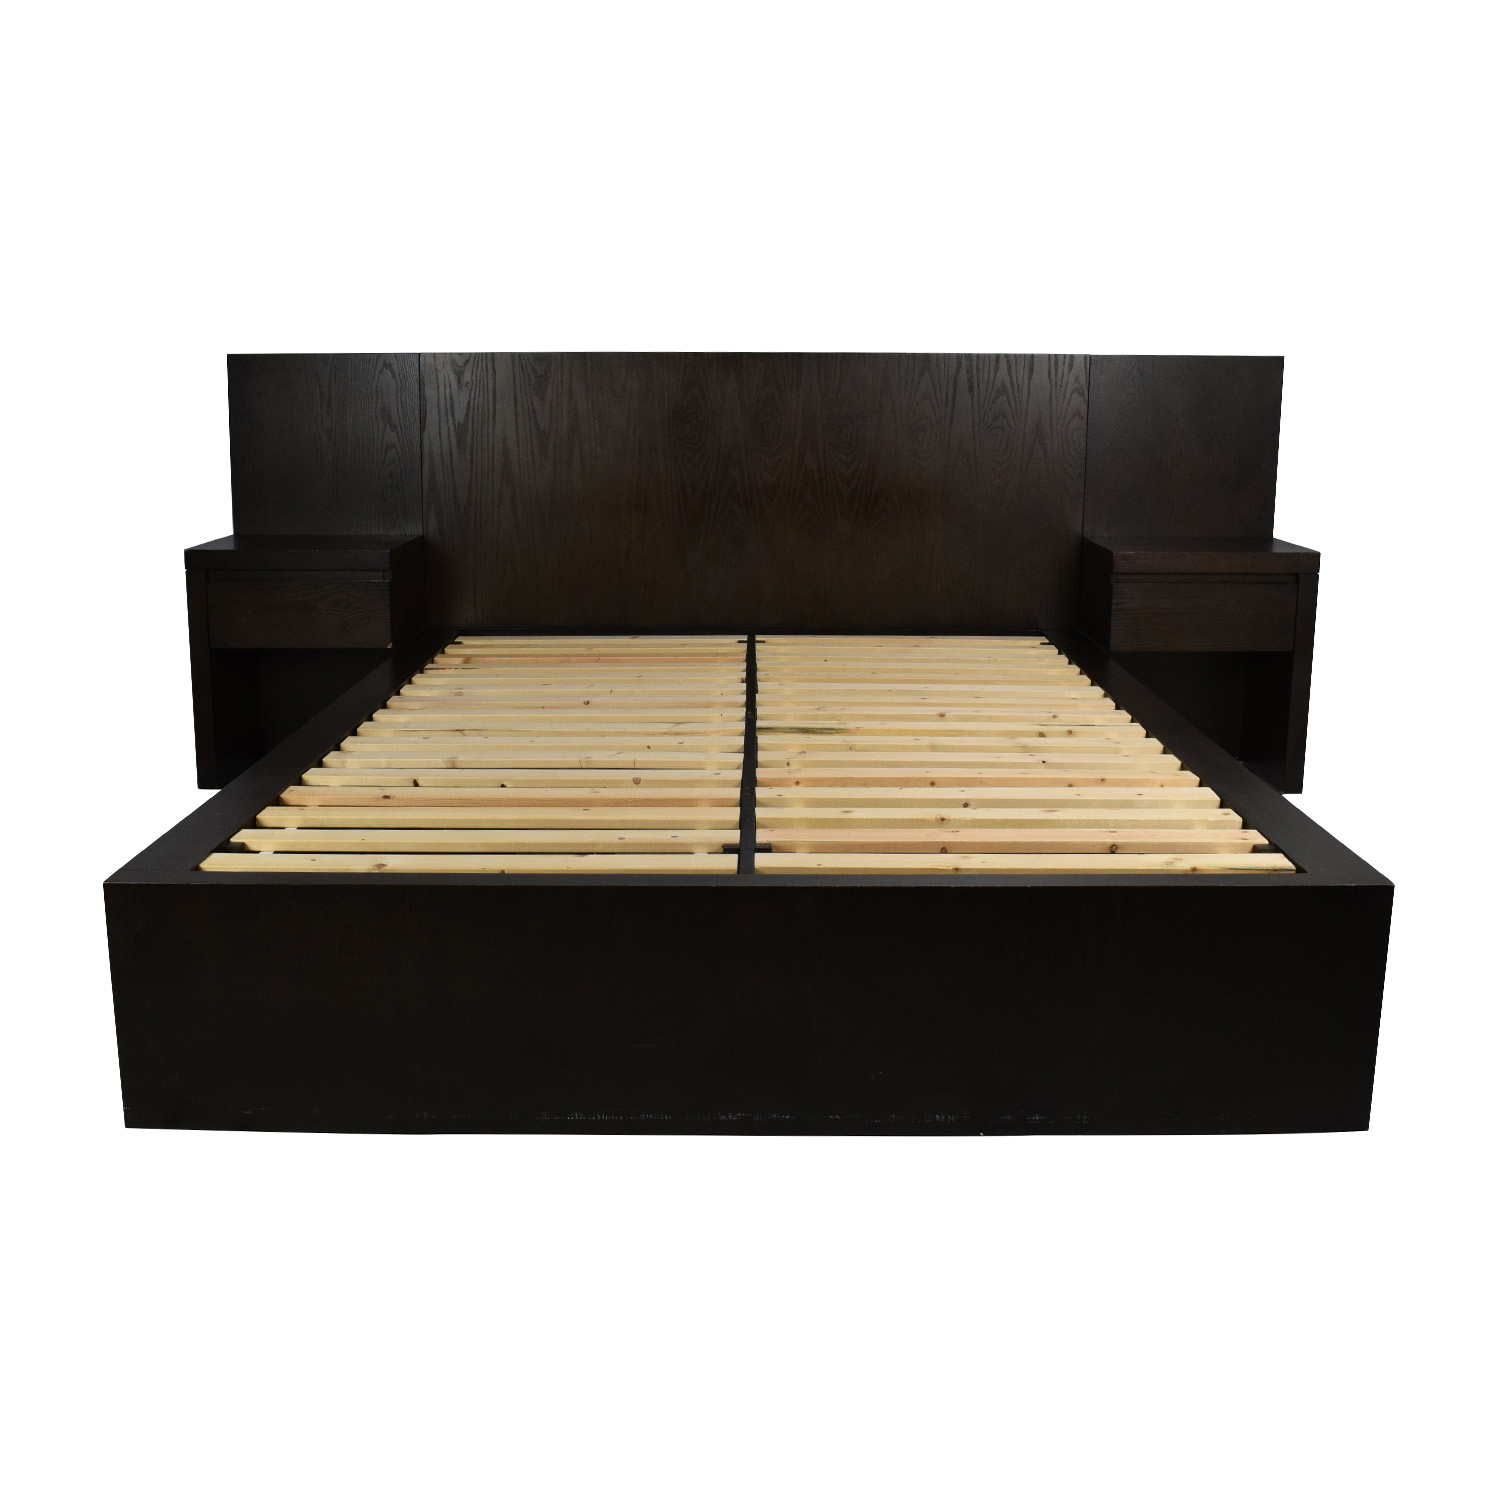 west elm west elm queen size storage platform bed frame on sale